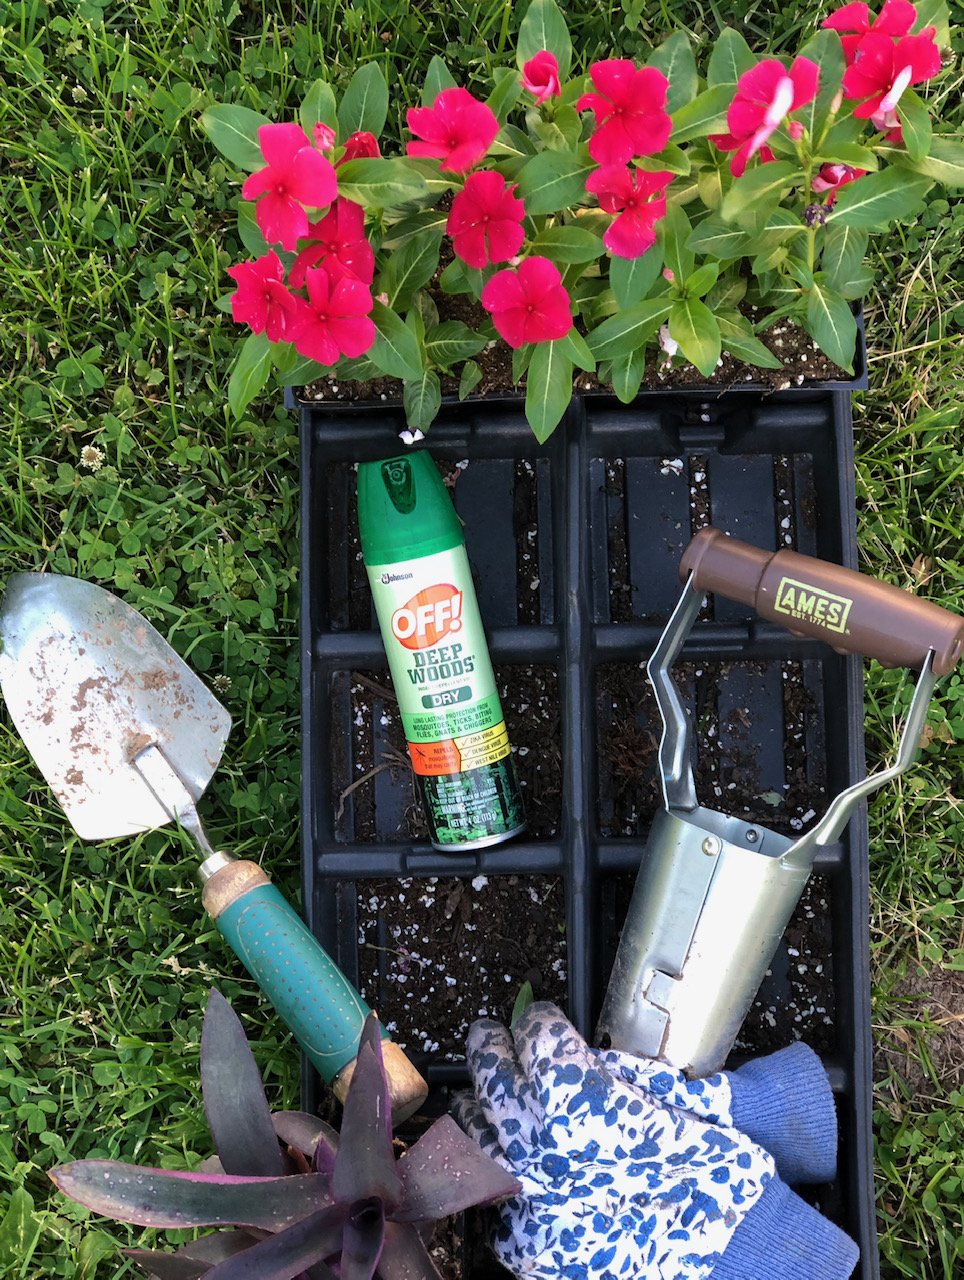 Off bug spray gardening